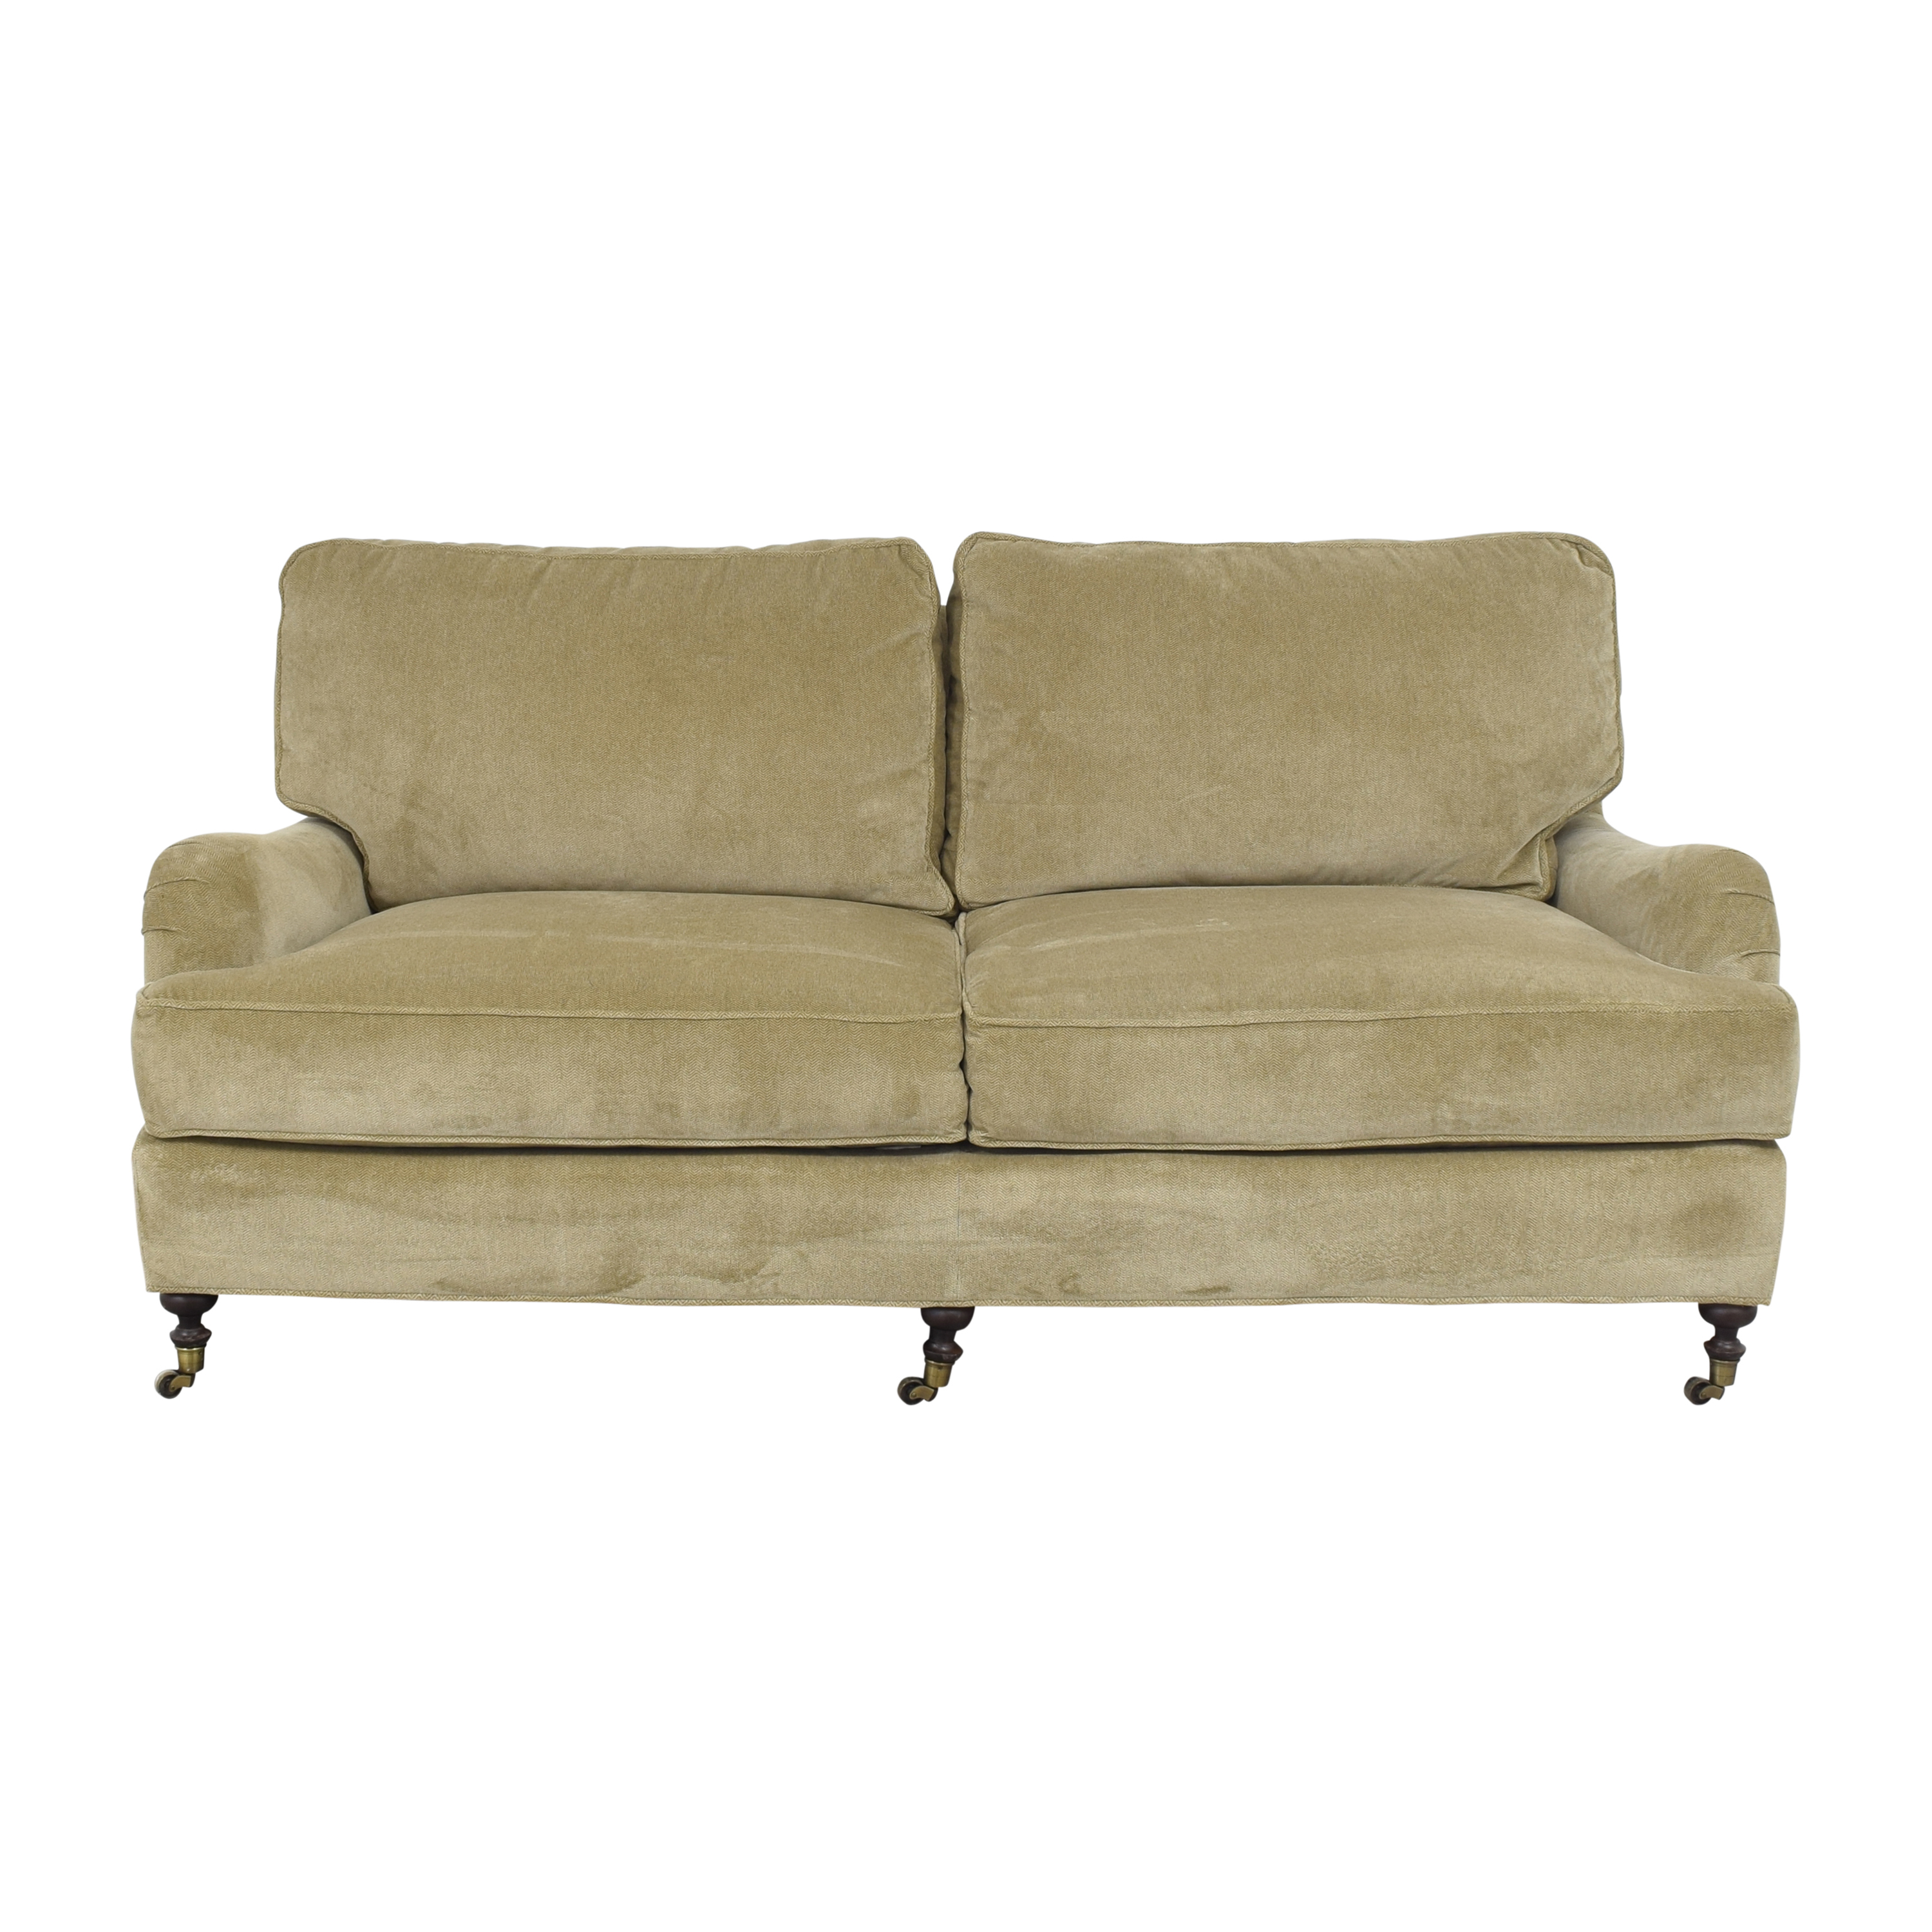 Lee Industries Two Cushion Sofa with Casters / Sofas